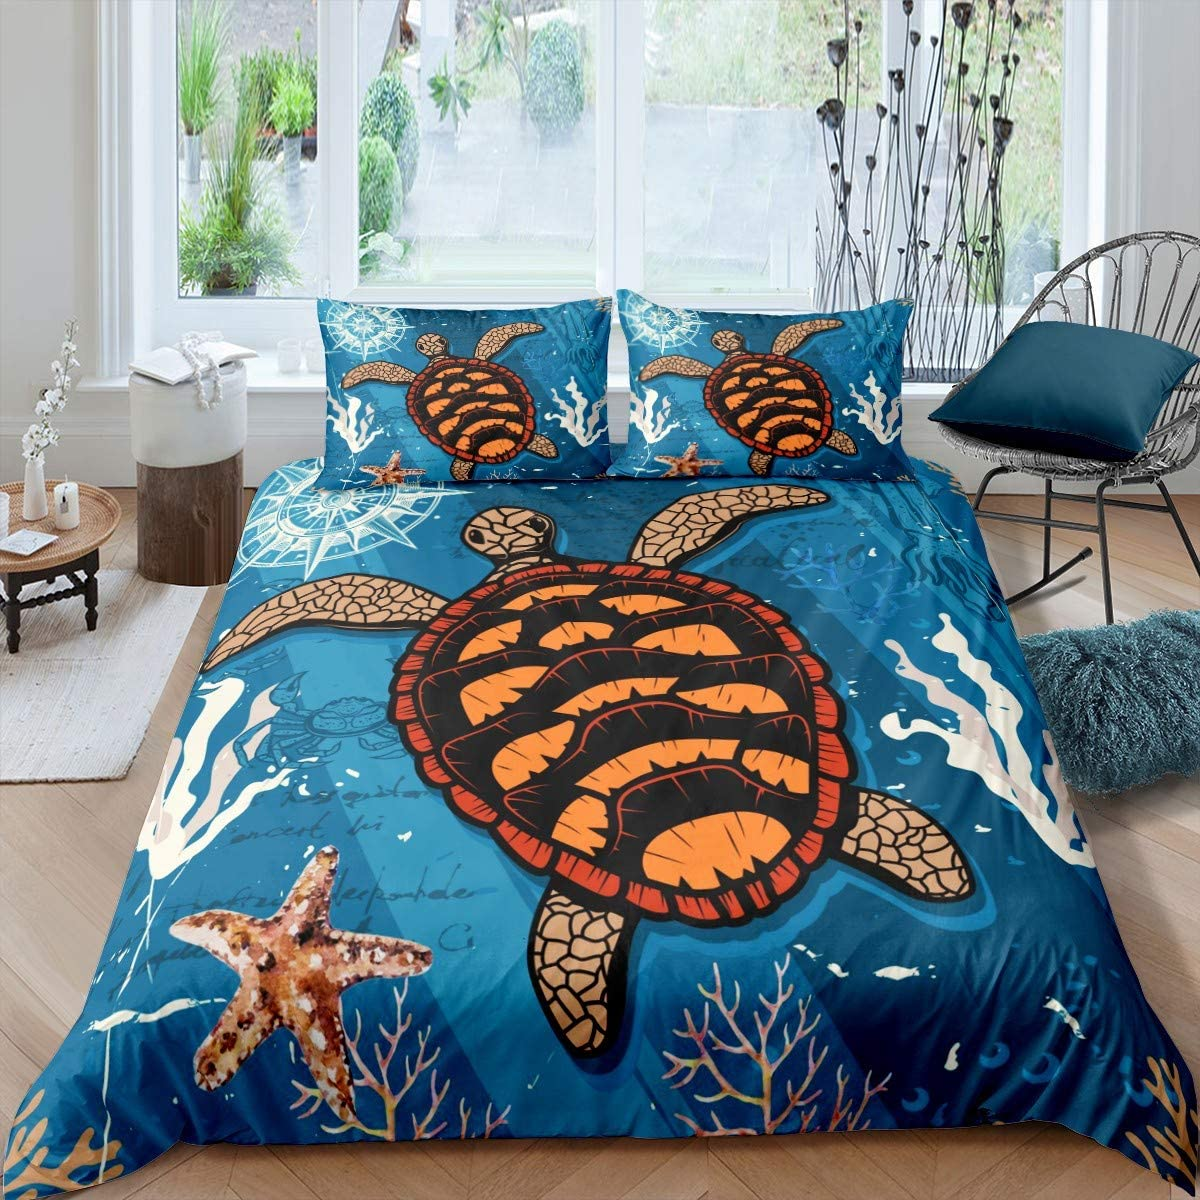 Kids Sea Turtle Comforter Cover Ocean Bedding Set for Boys Girls Teens Beach Starfish Duvet Cover Sea Creature Marine Life Sealife Bedspread Cover Room Decor Quilt Cover Twin Size